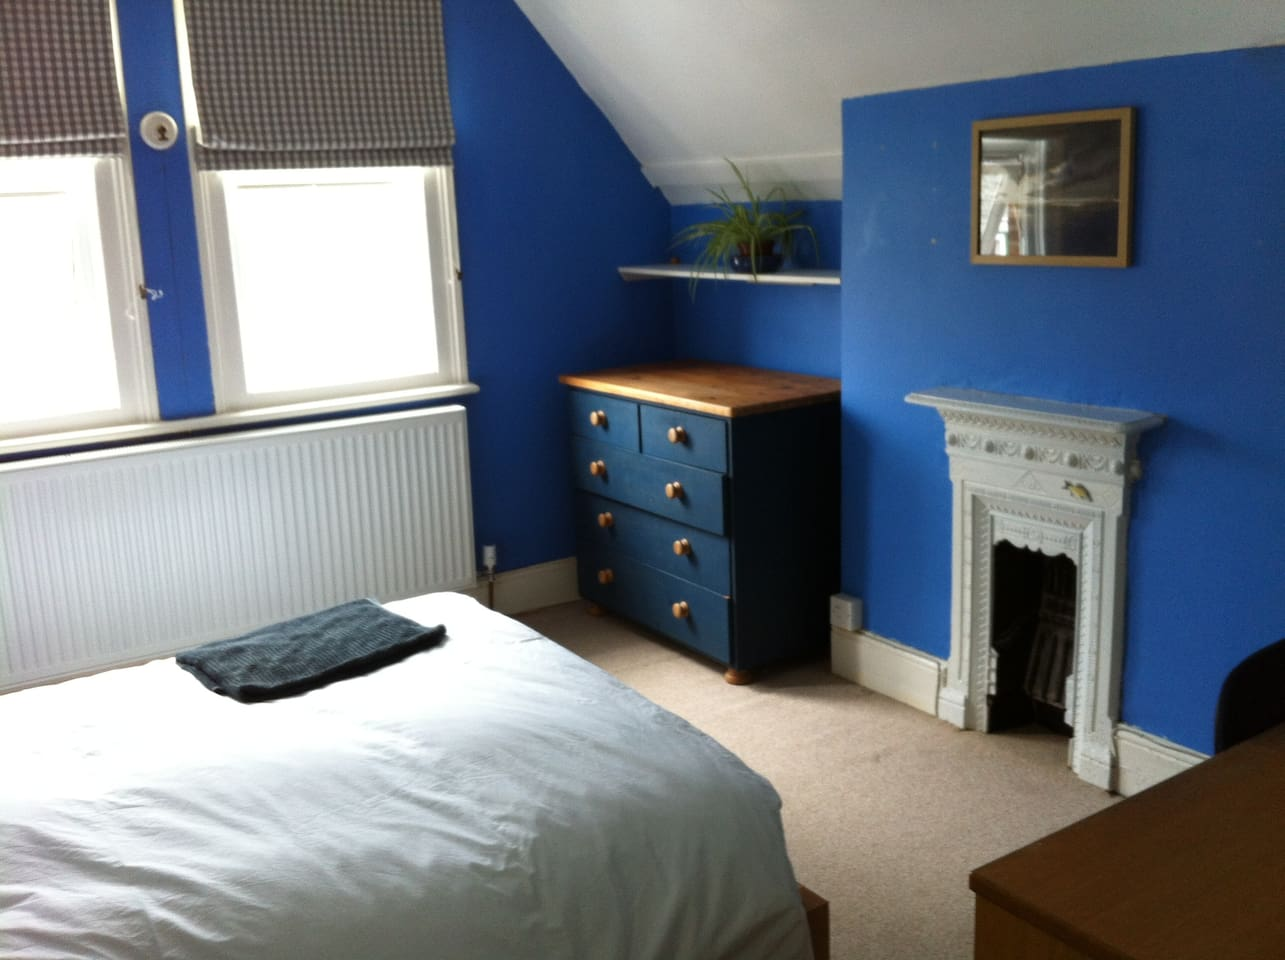 Bedroom 1, a bright, airy double room with standard sized double.